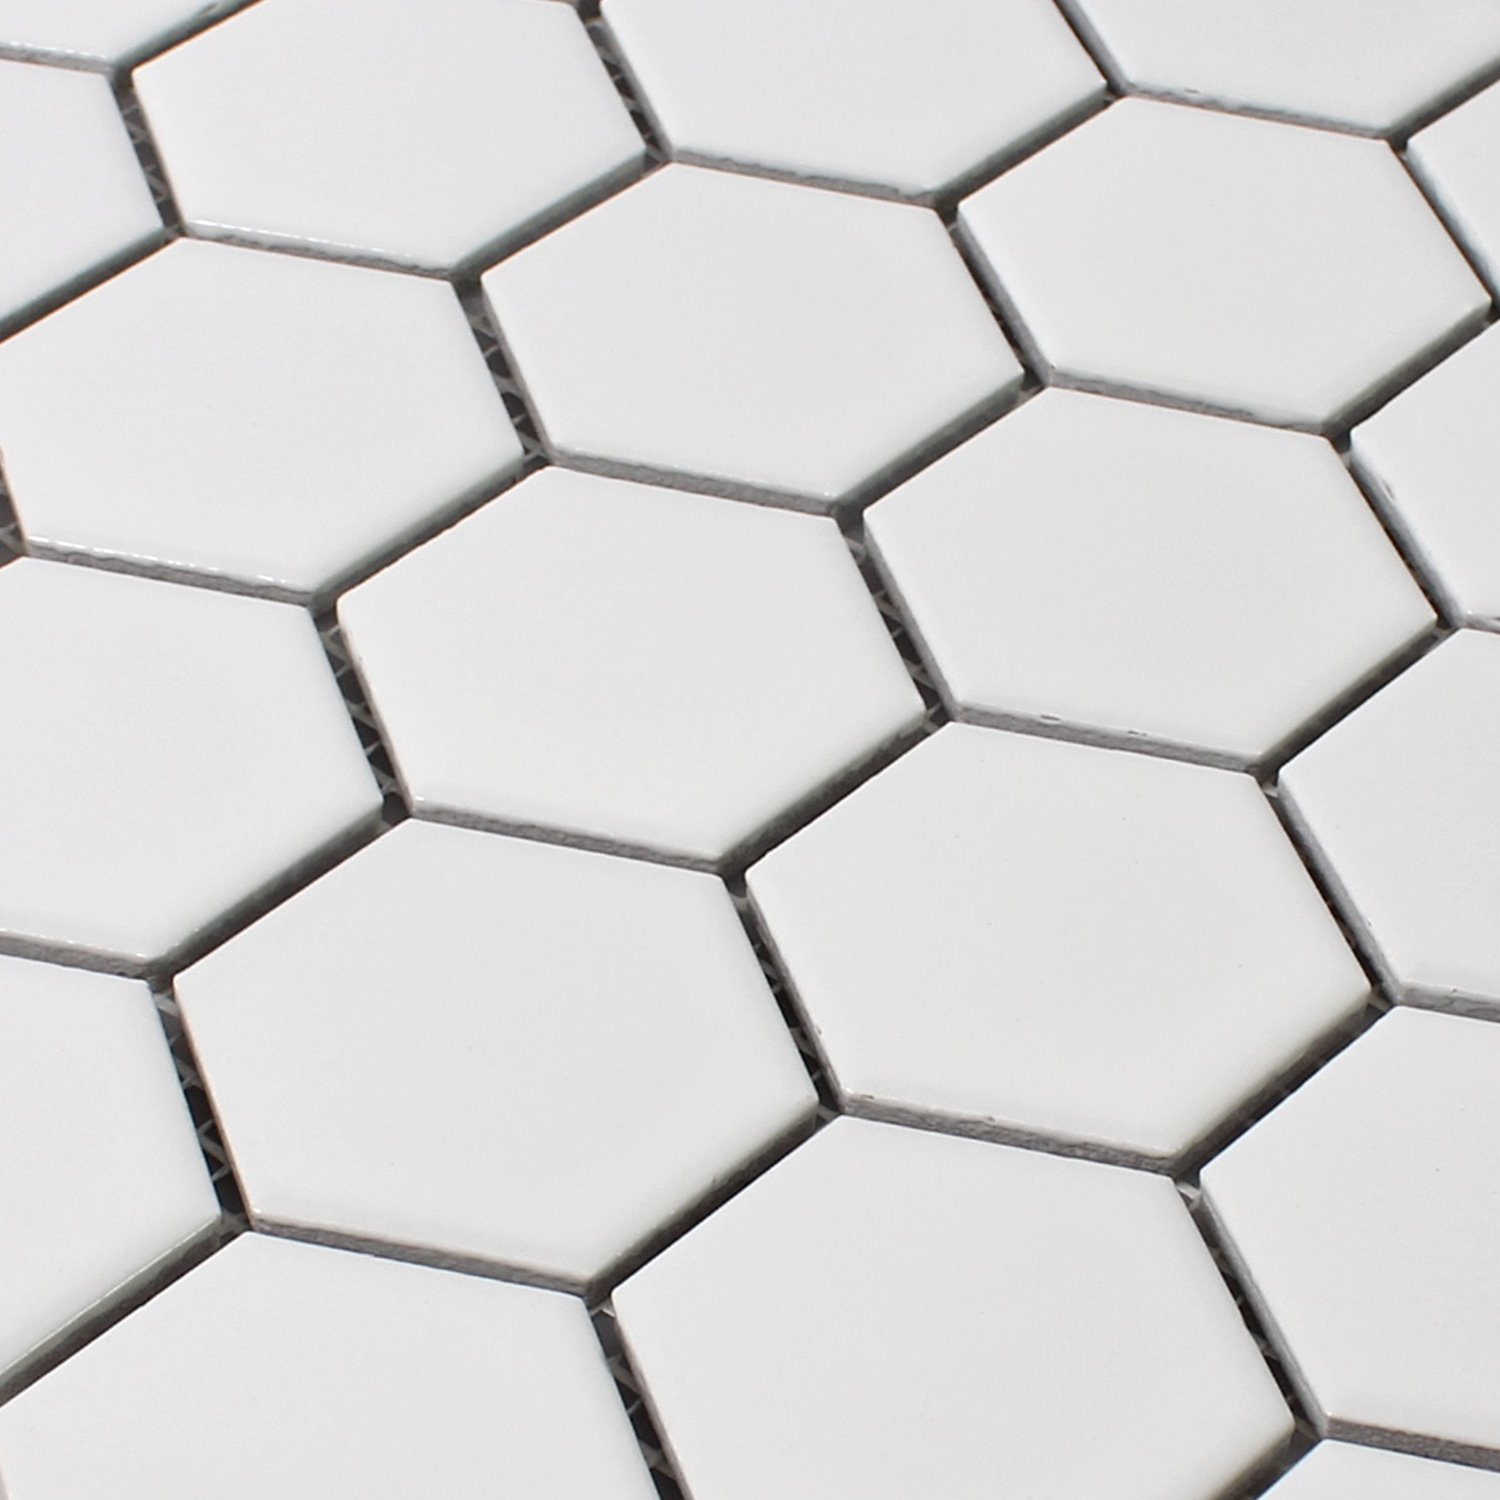 Hexagon. Excellent Amazoncom Ez A Rotary Cutting Shapes ...